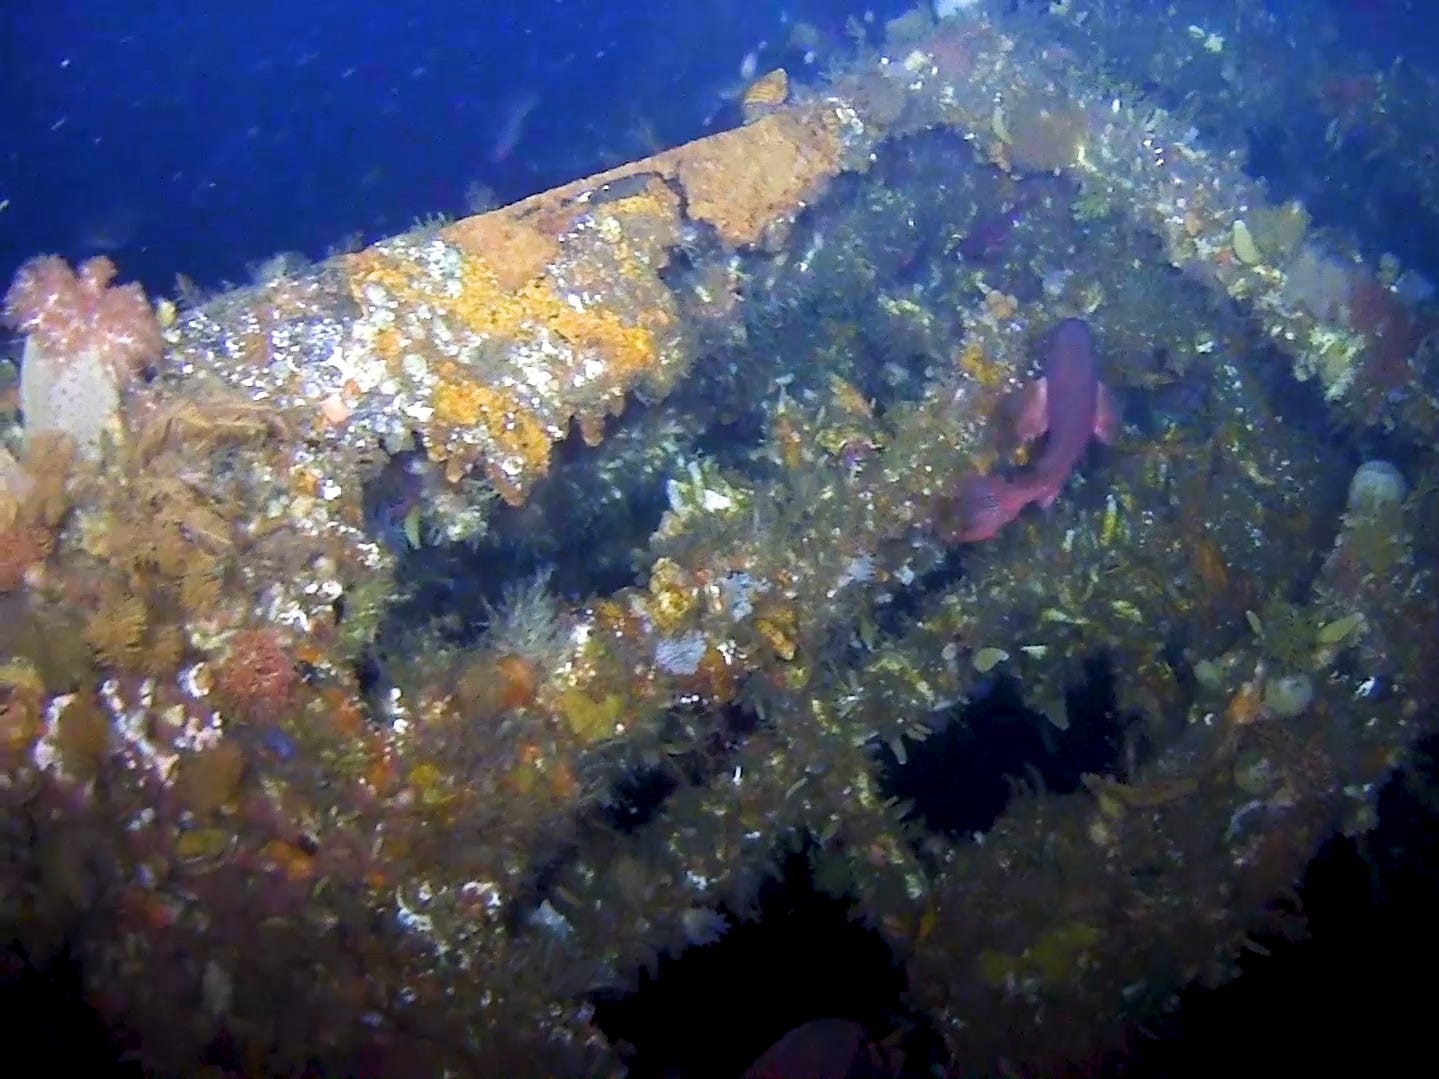 This summer, scientists from the University of Delaware and other organizations helped find the final resting ground of the stern of the WWII destroyer USS Abner Read, which has been resting at the bottom of the Bering Sea for 75 years.